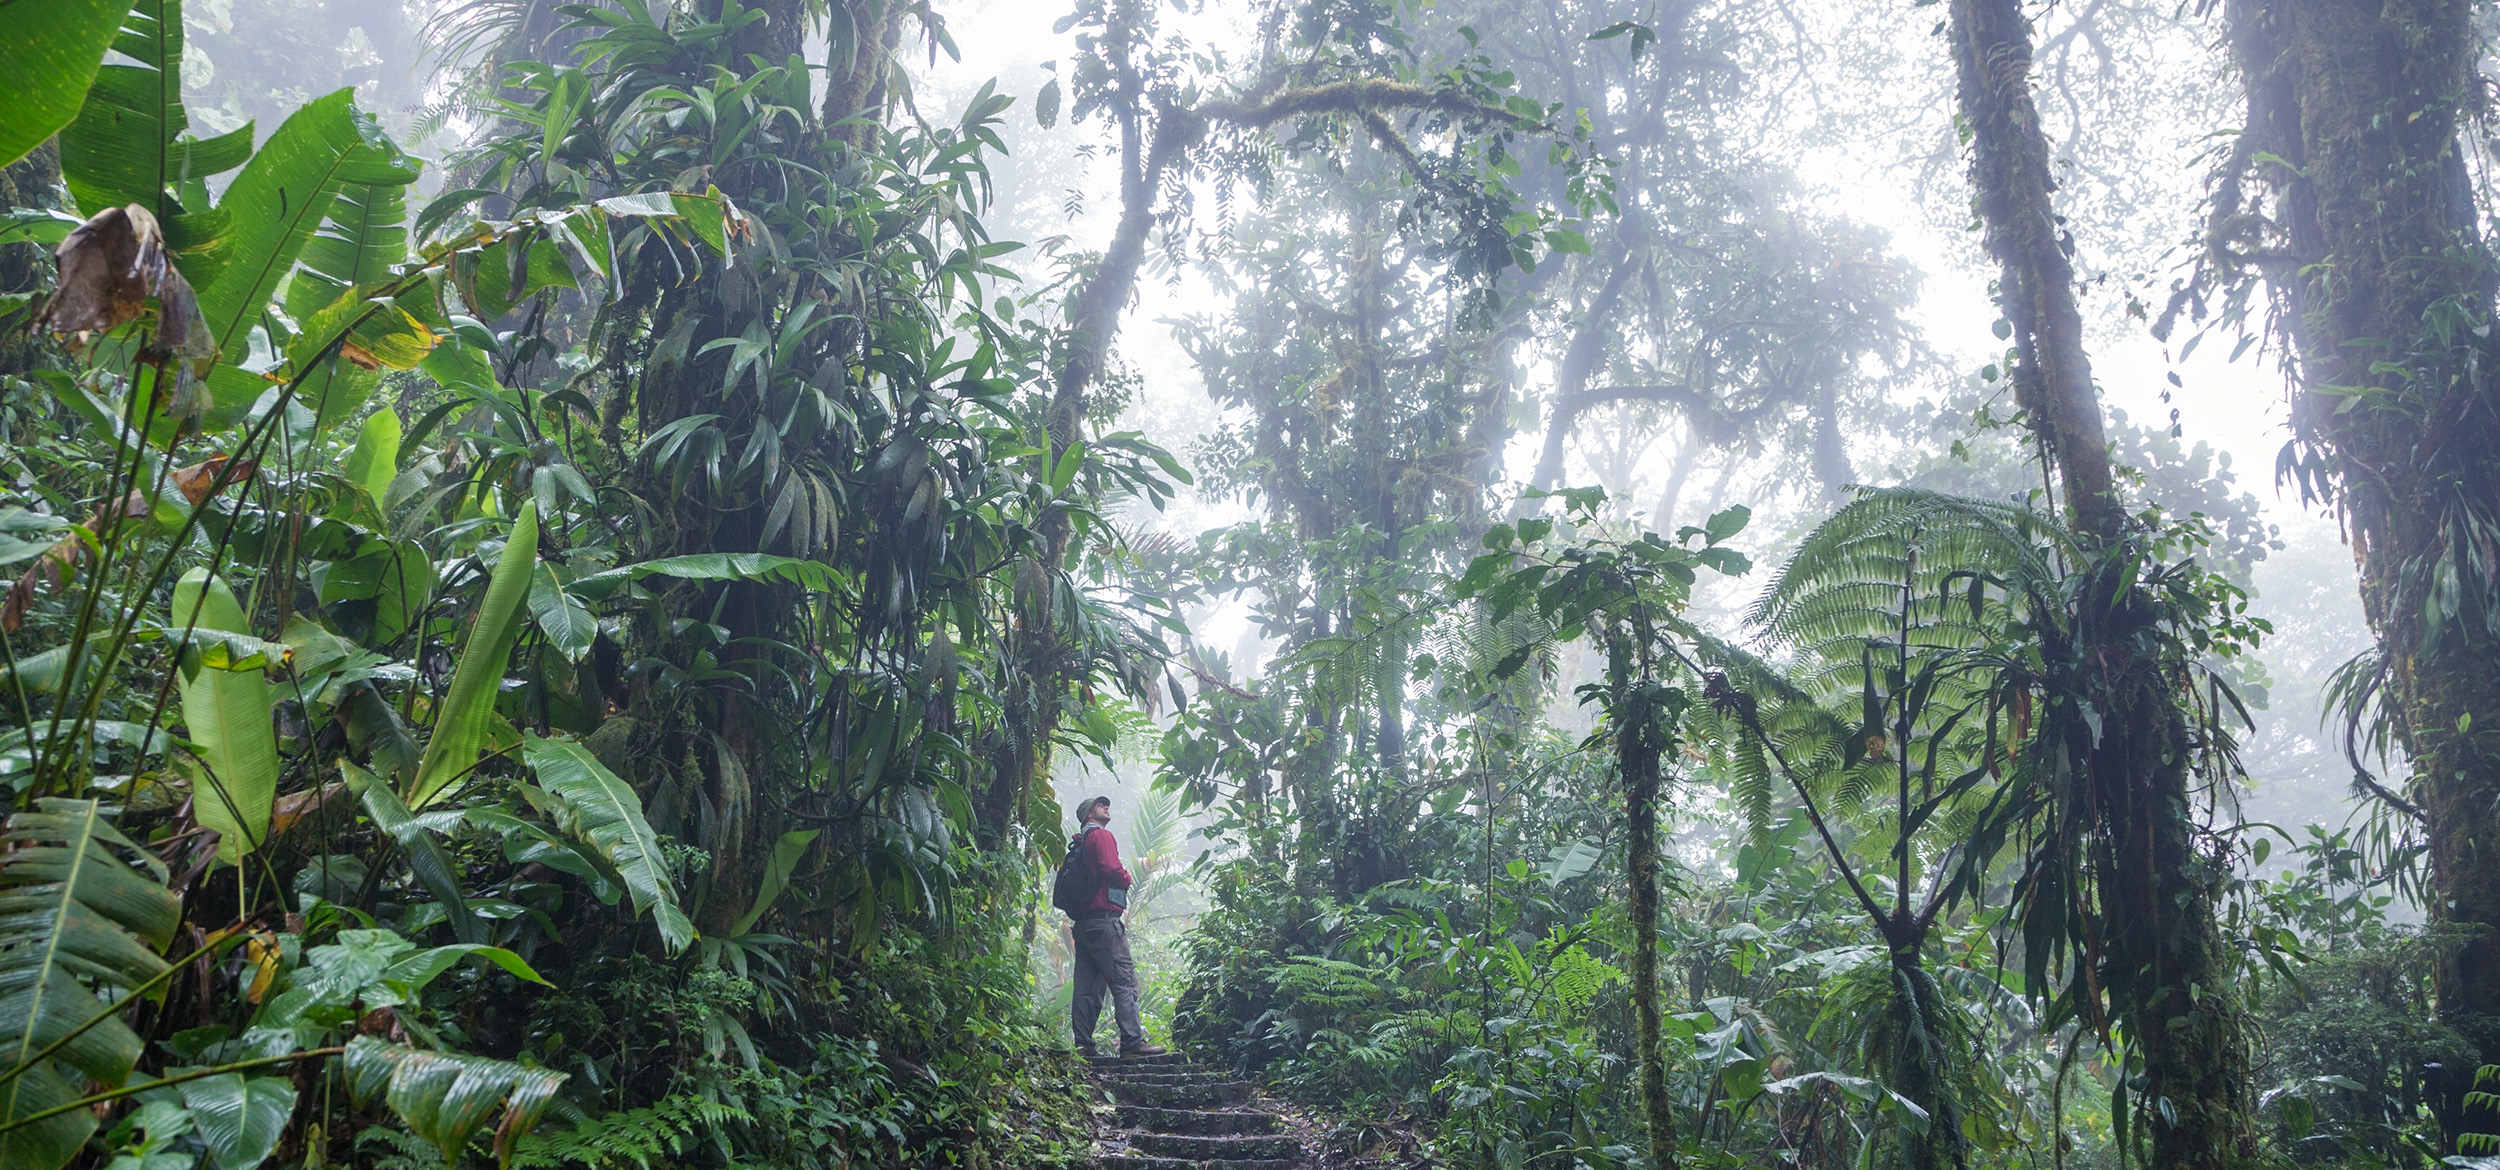 Tourist following a hiking path in the Monteverde Cloud Forest in Costa Rica.